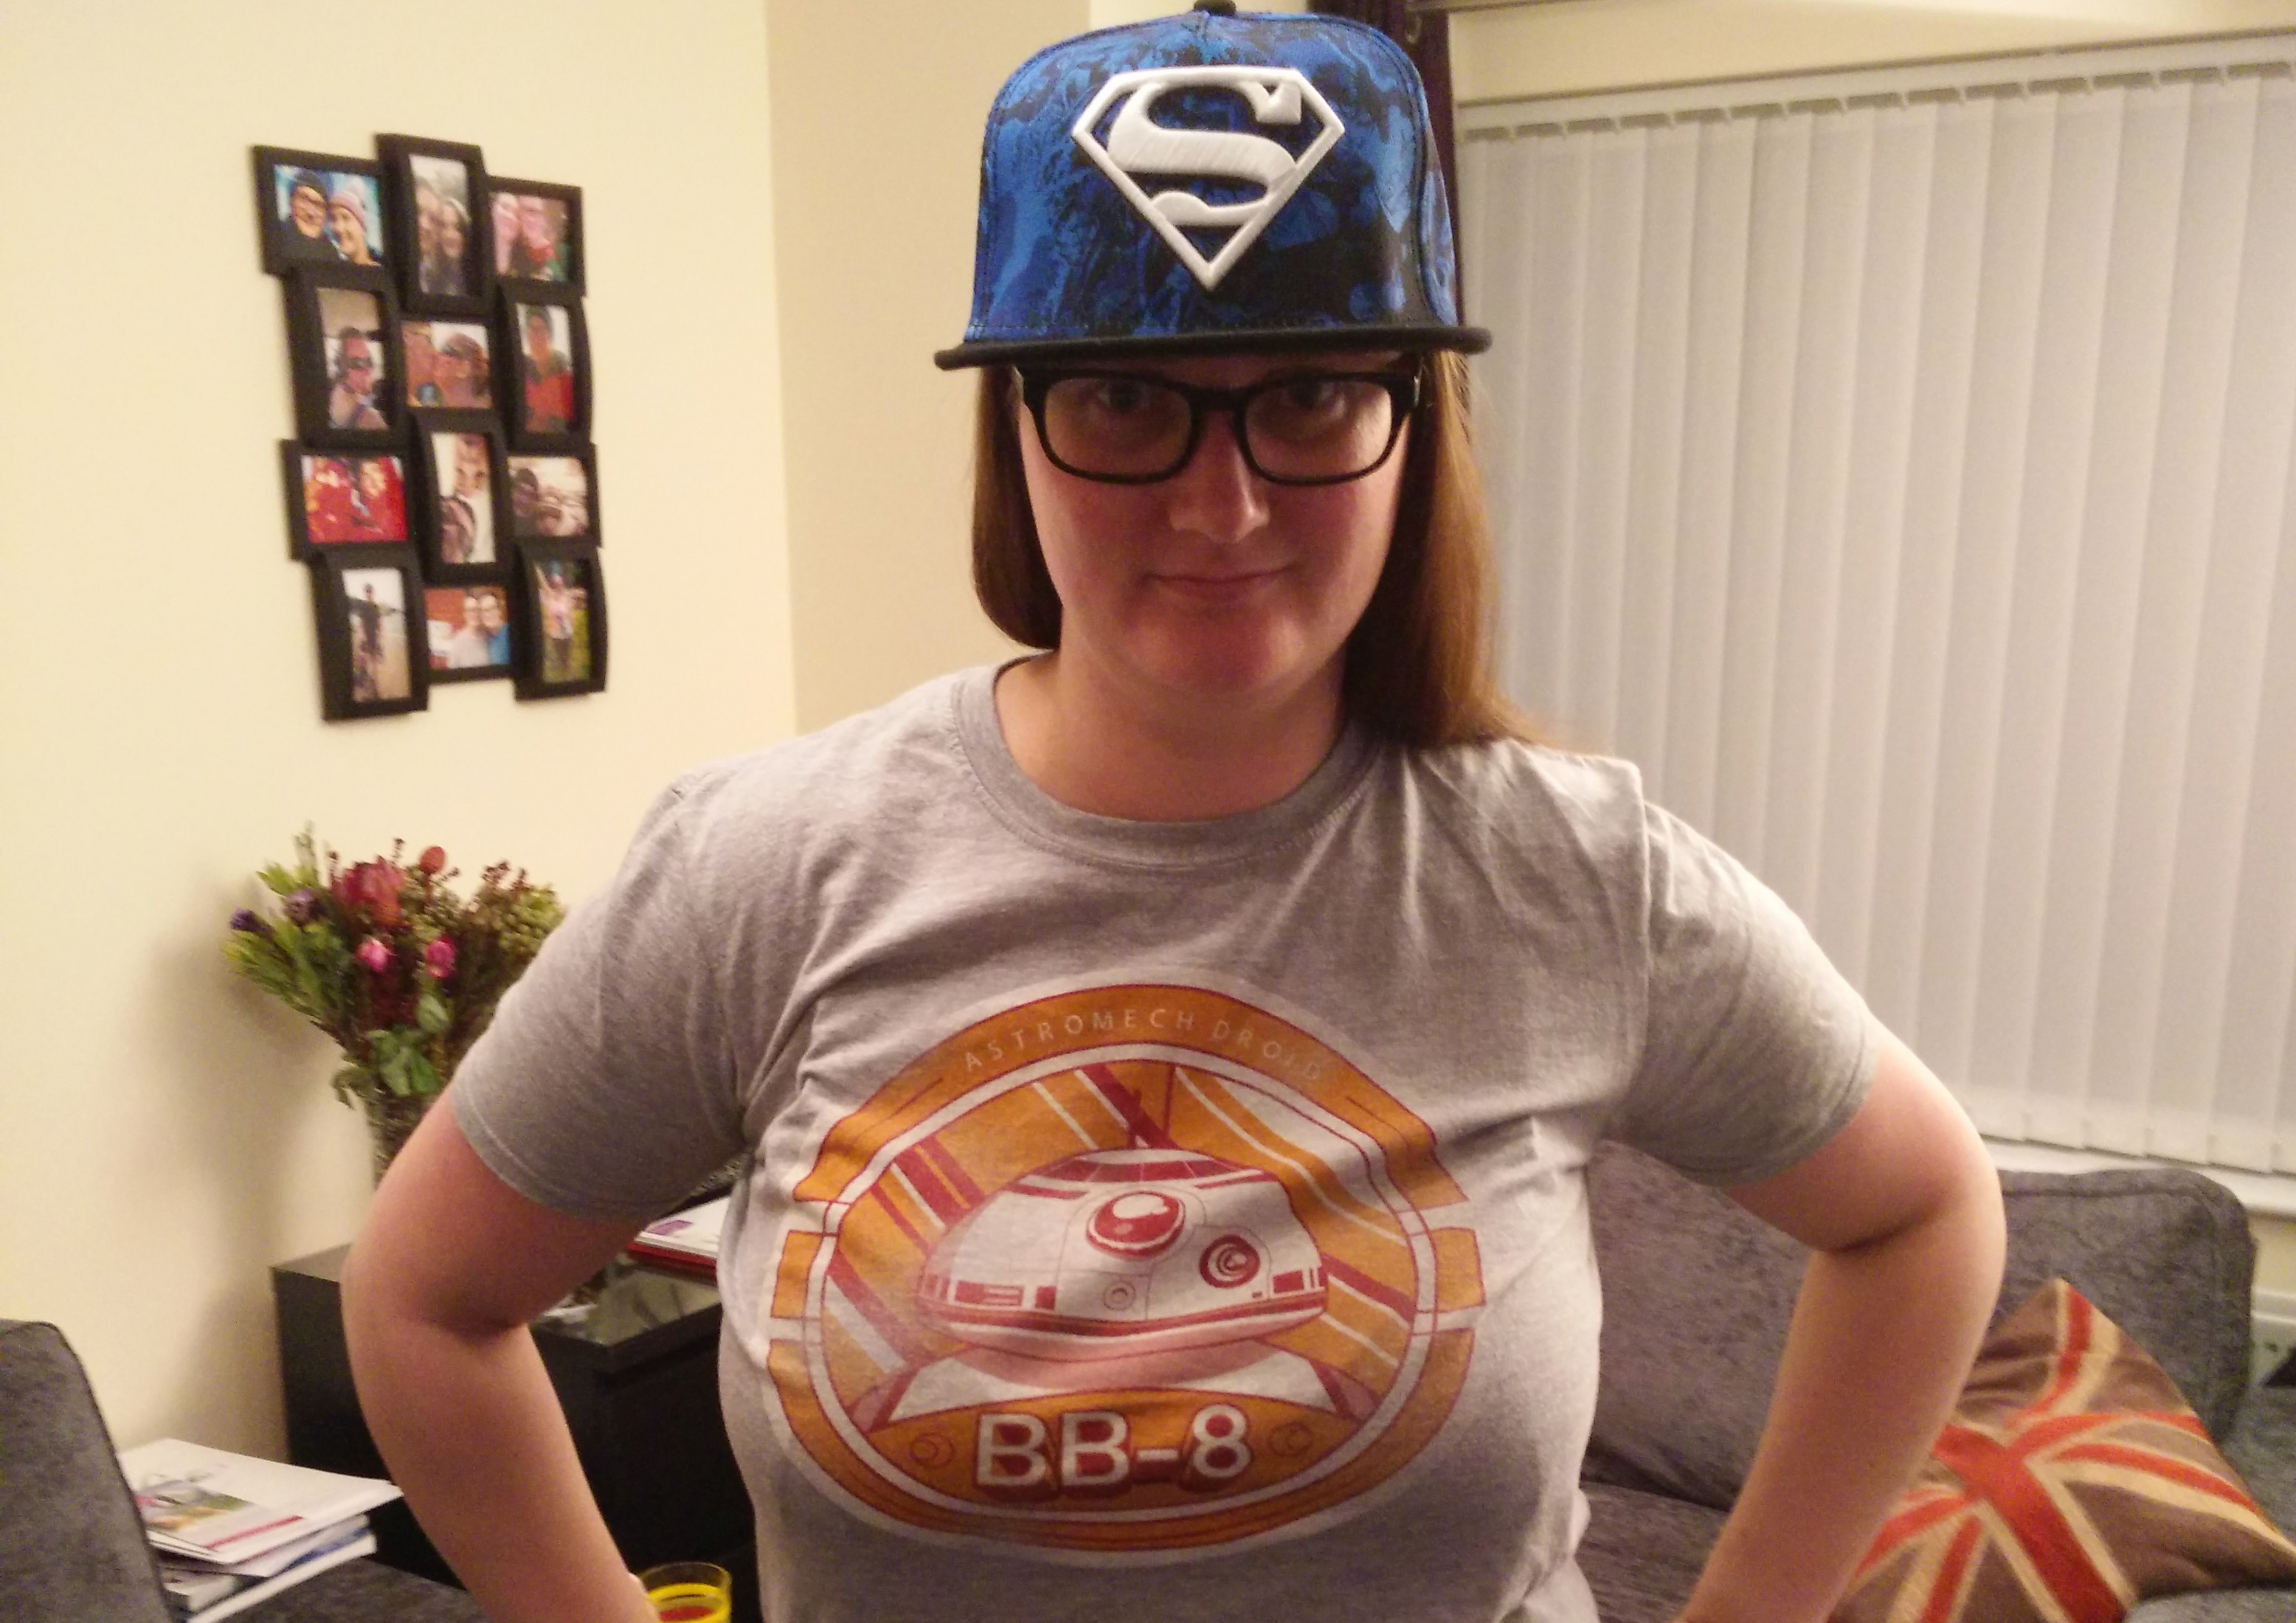 Geek fashion from BBT Clothing